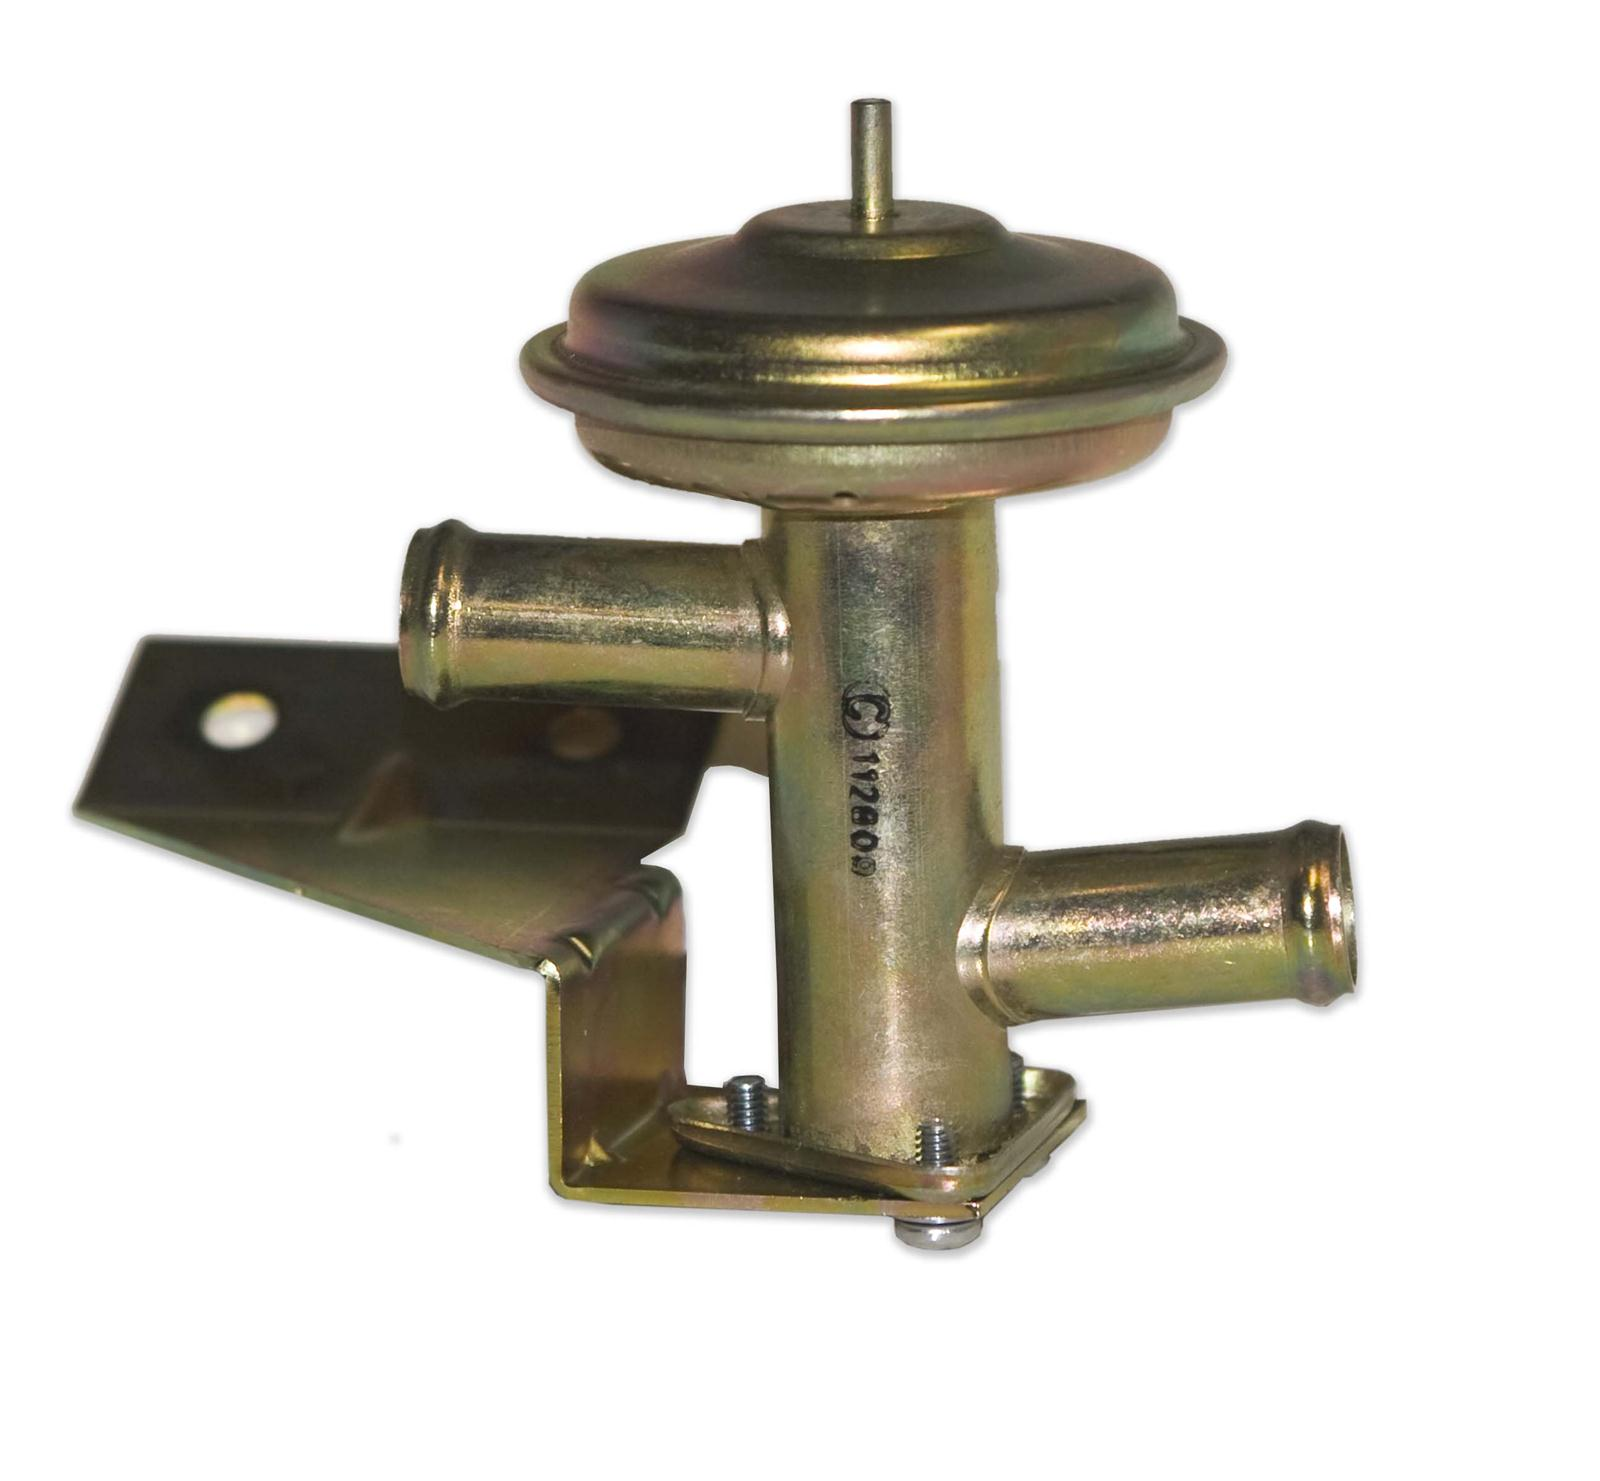 Scott Drake Heater Control Valves C7ZZ-18495-A - Free Shipping on Orders  Over $99 at Summit Racing